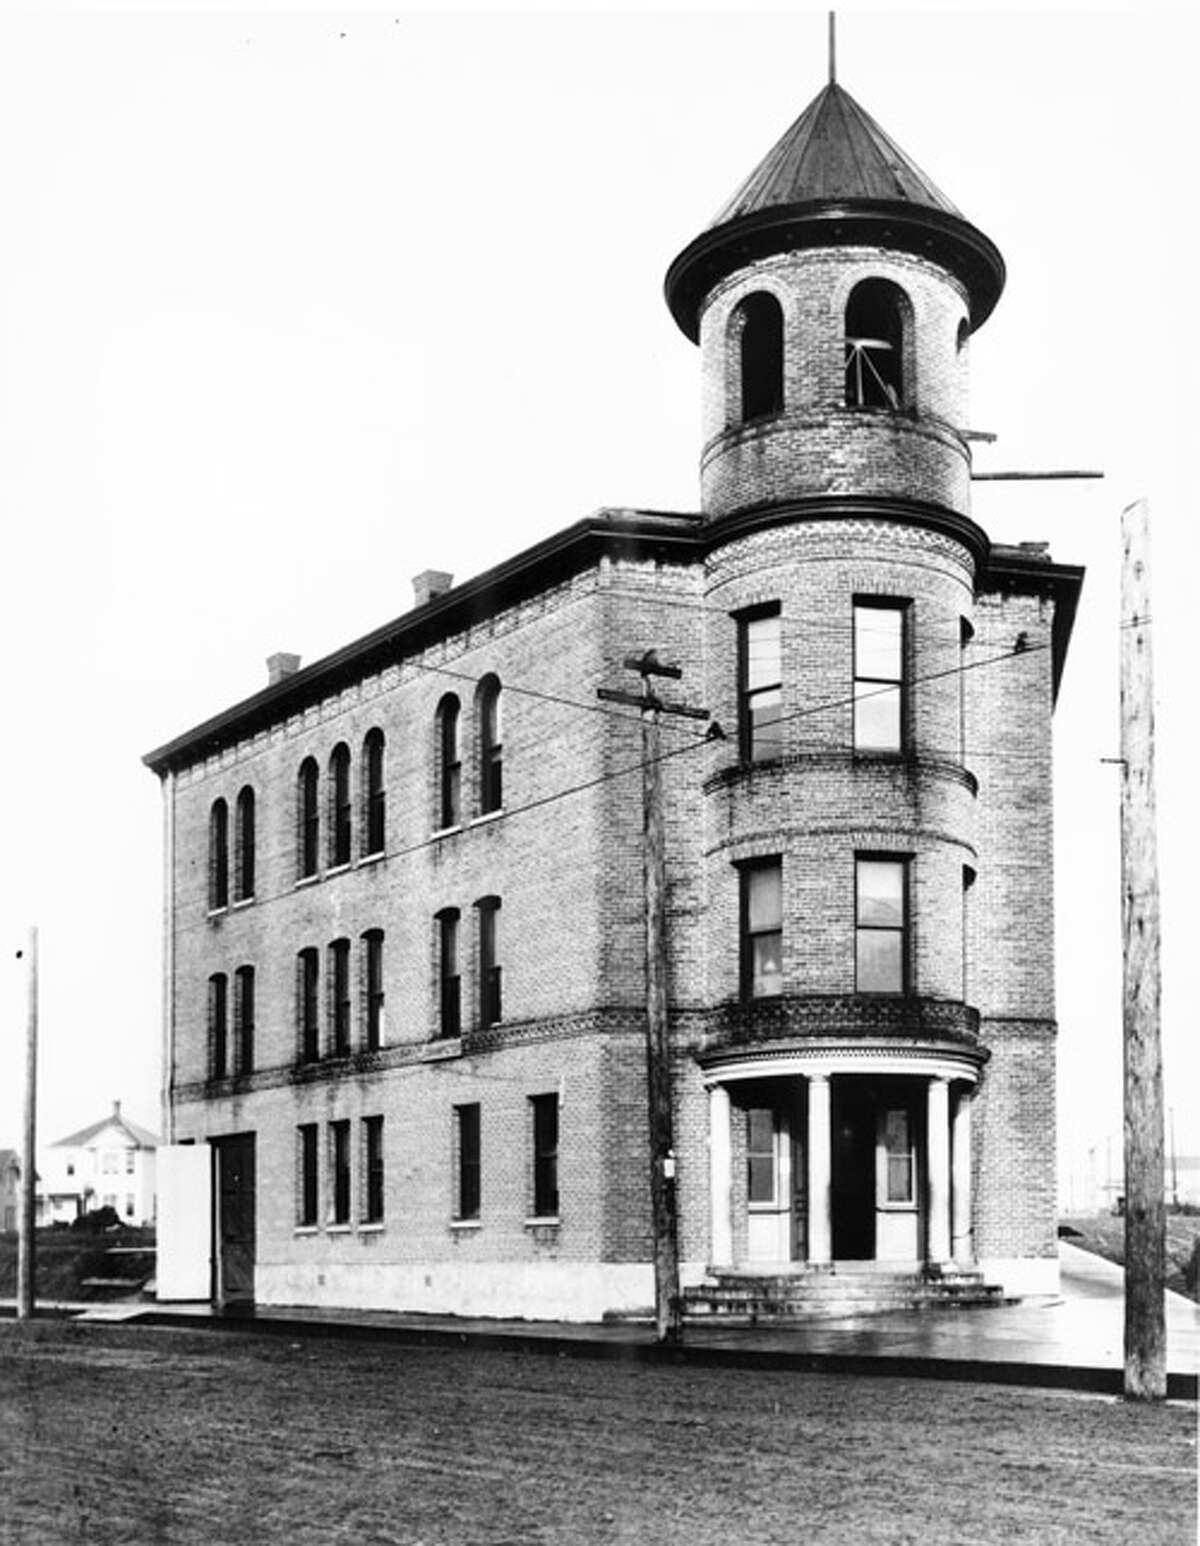 Ballard's old City Hall included the fire department, city offices, community meeting rooms, a ballroom and the jail, according to Seattle Municipal Archives caption information. This photo from 1902 shows the building five years before Ballard cast off its independence in favor of joining Seattle. The building was torn down in 1965. Photo courtesy Seattle Municipal Archives, University of Washington Special Collections, A. Curtis 00881.